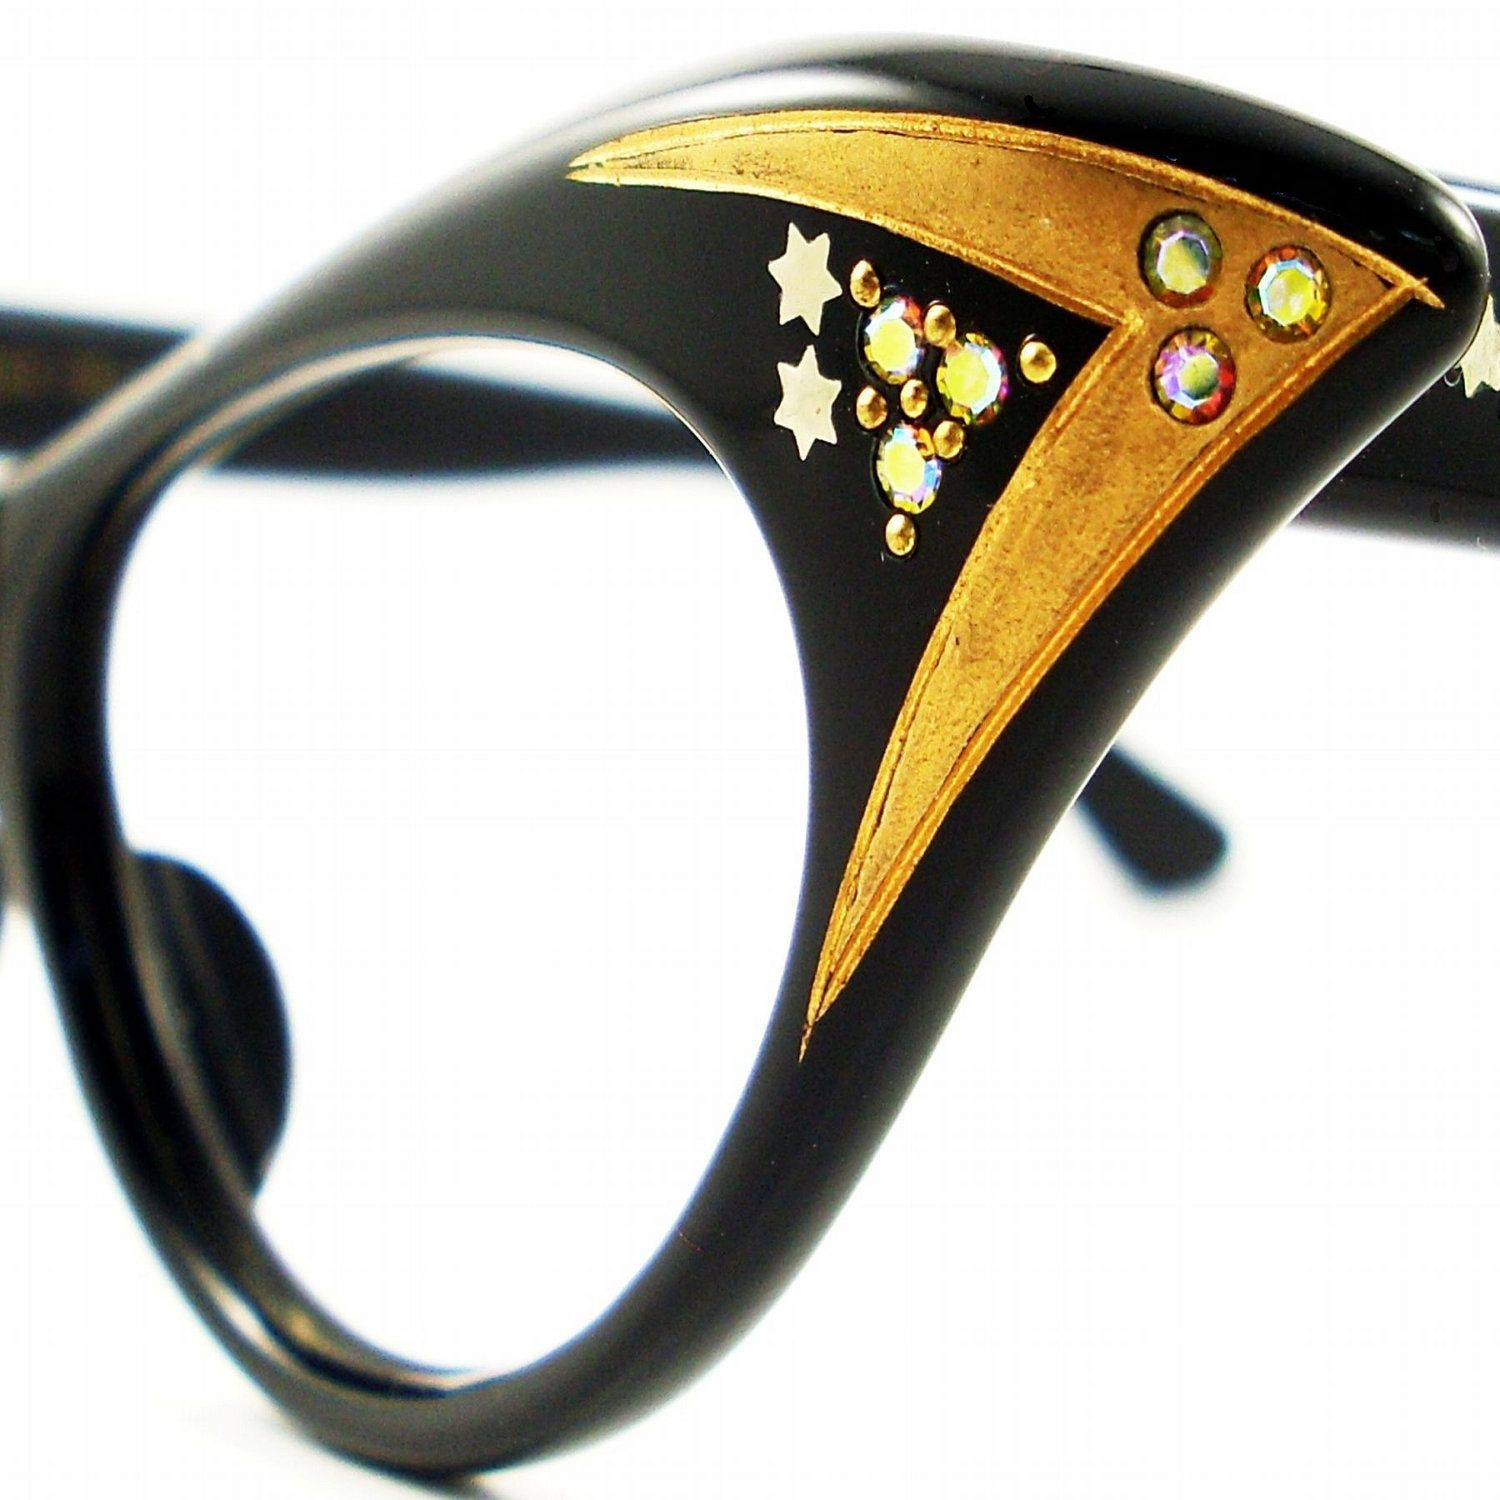 Vintage  Cat Eye Glasses Eyeglasses Sunglasses Glasses New 50s Frame Rhinestones 5